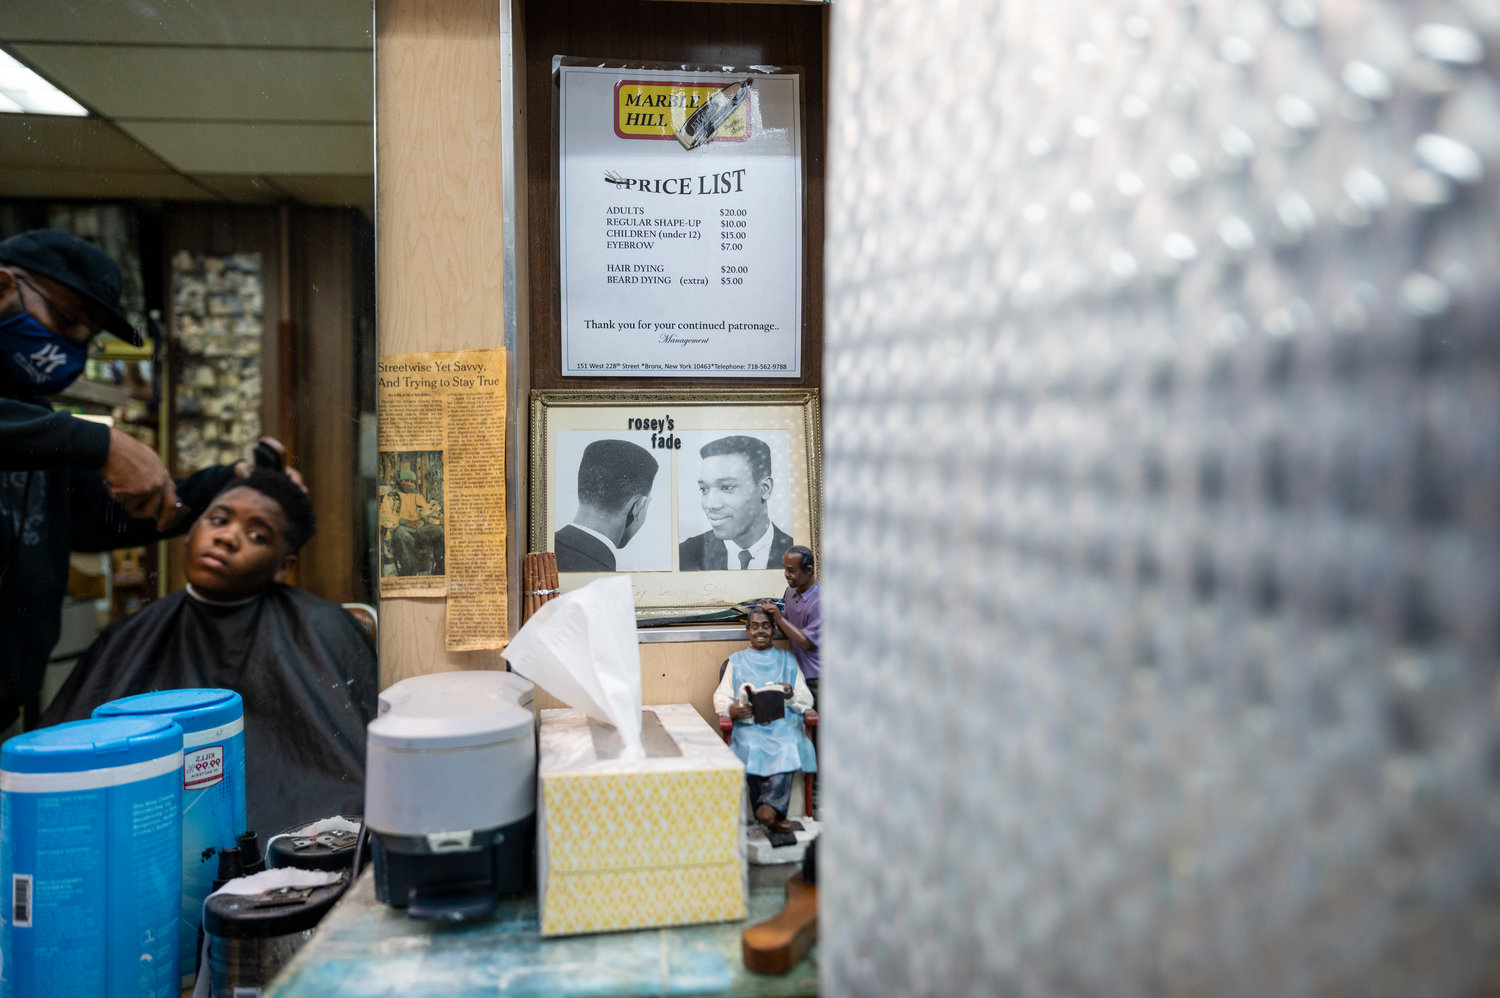 Rosey's Barber Shop, an informal name for Marble Hill's International Unisex Salon, has served the northern Manhattan neighborhood for nearly 60 years. Neighbors consider its owner, Roosevelt Spivey, a cherished member of the community. When Rosey's landlord tried to raise his rent last year, that same community rallied around him, helping him fight to keep his shop.